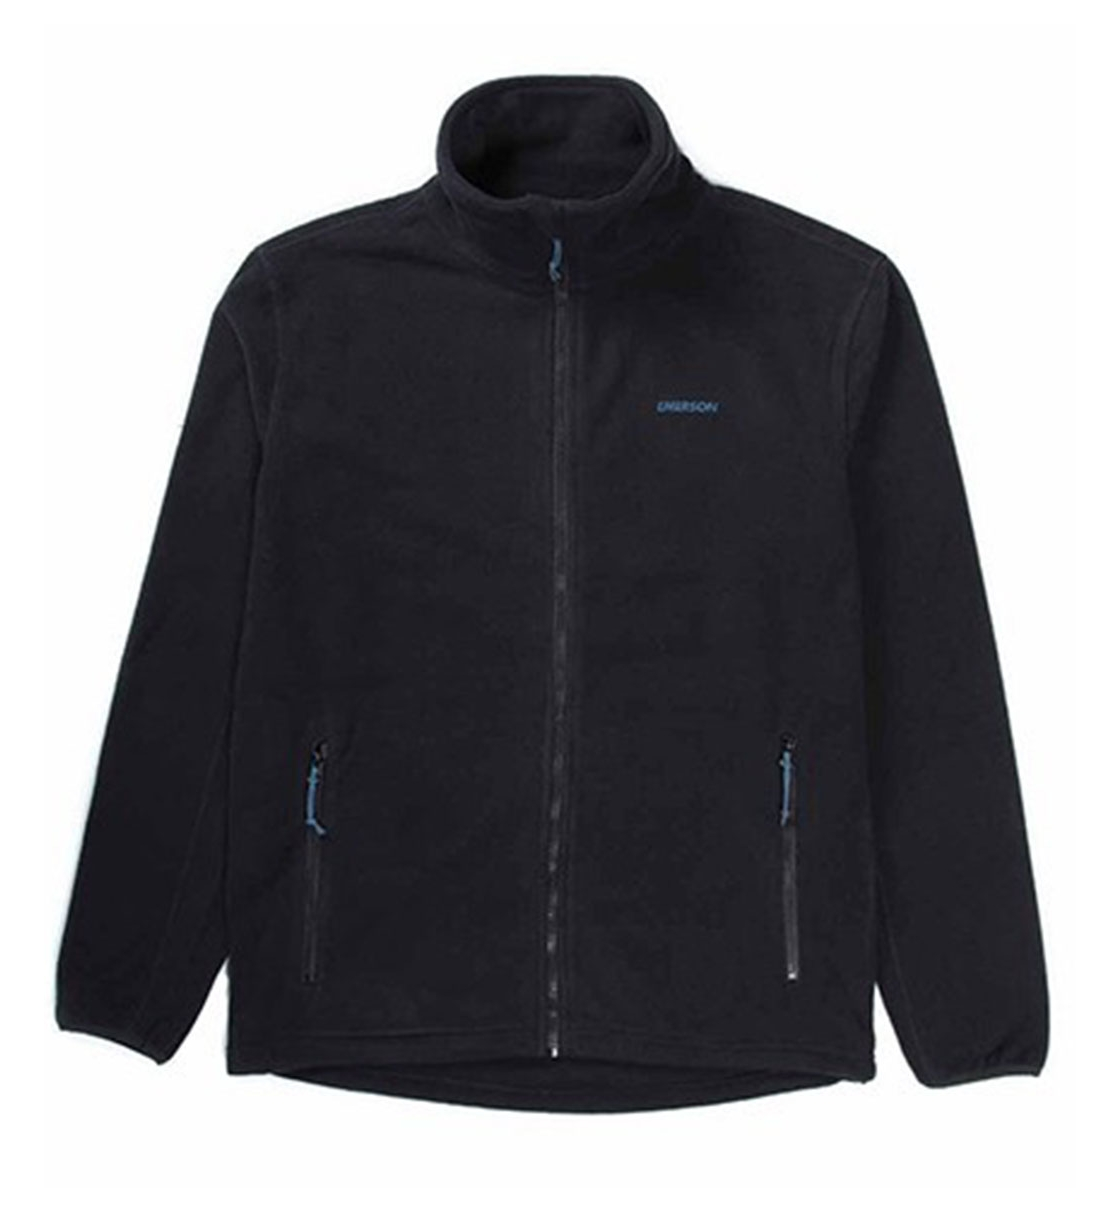 Emerson Fw19 Men'S Zip Up Fleece Jacket